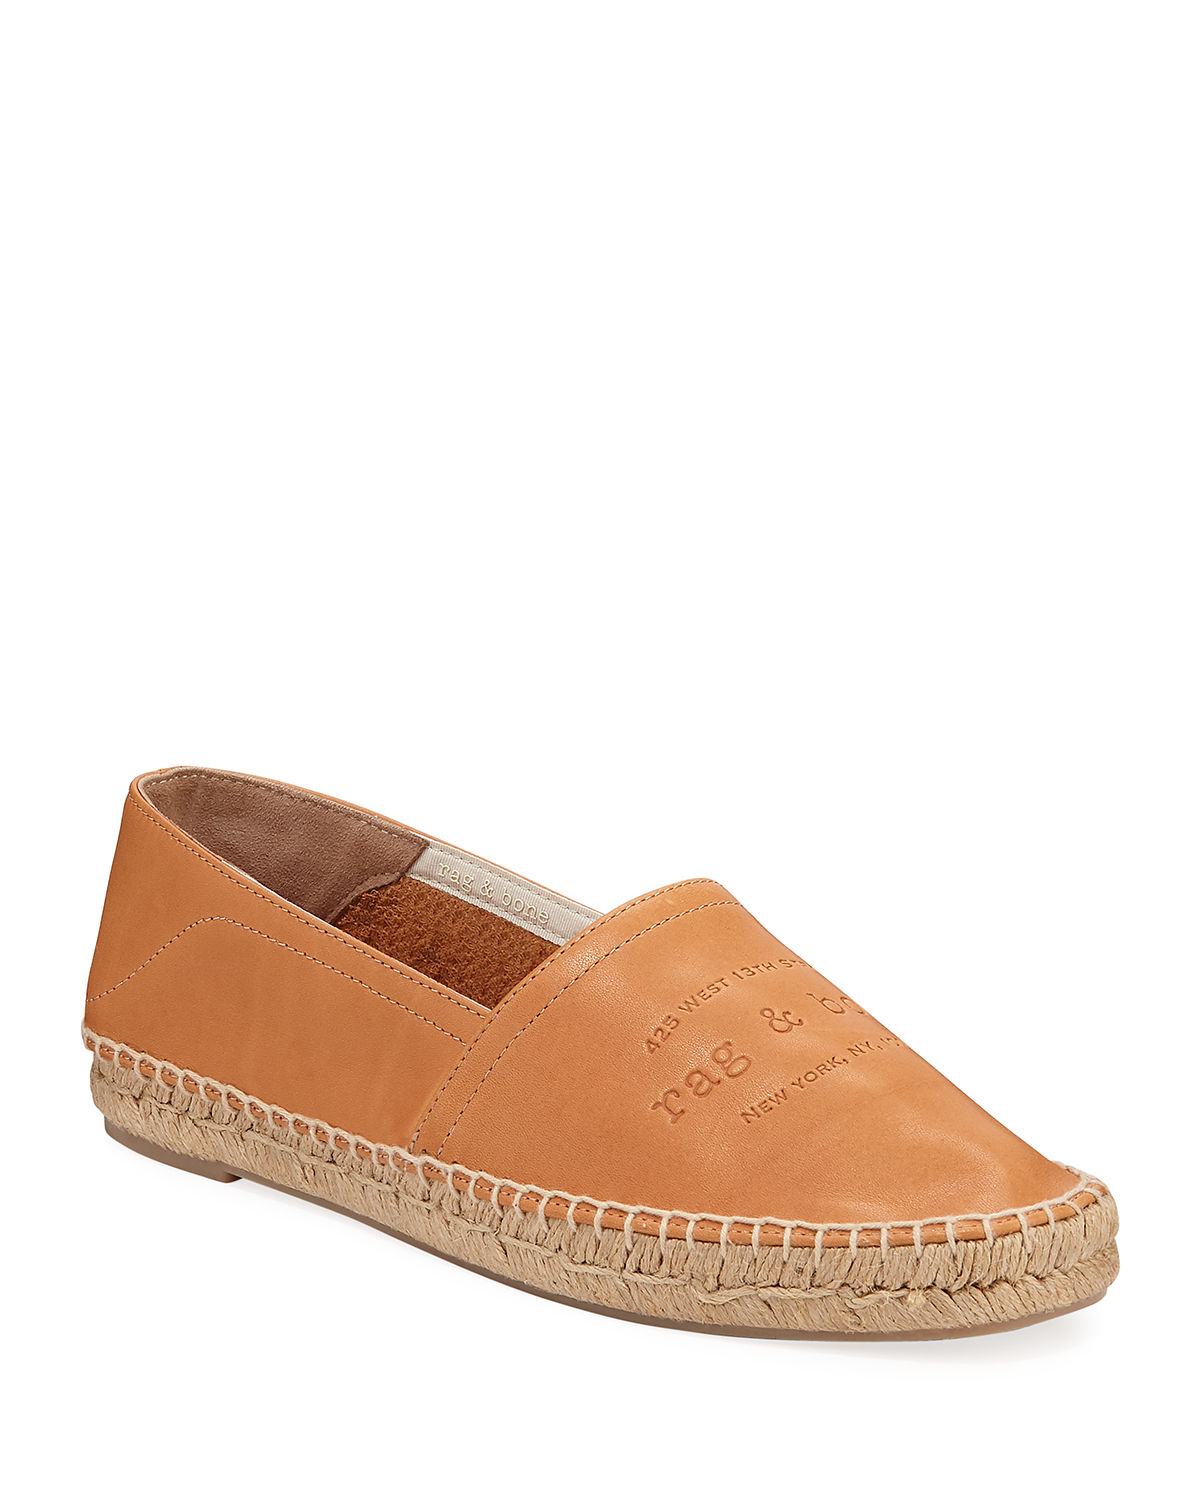 Rag & Bone Shoes EDIE LEATHER LOGO SLIP-ON ESPADRILLES